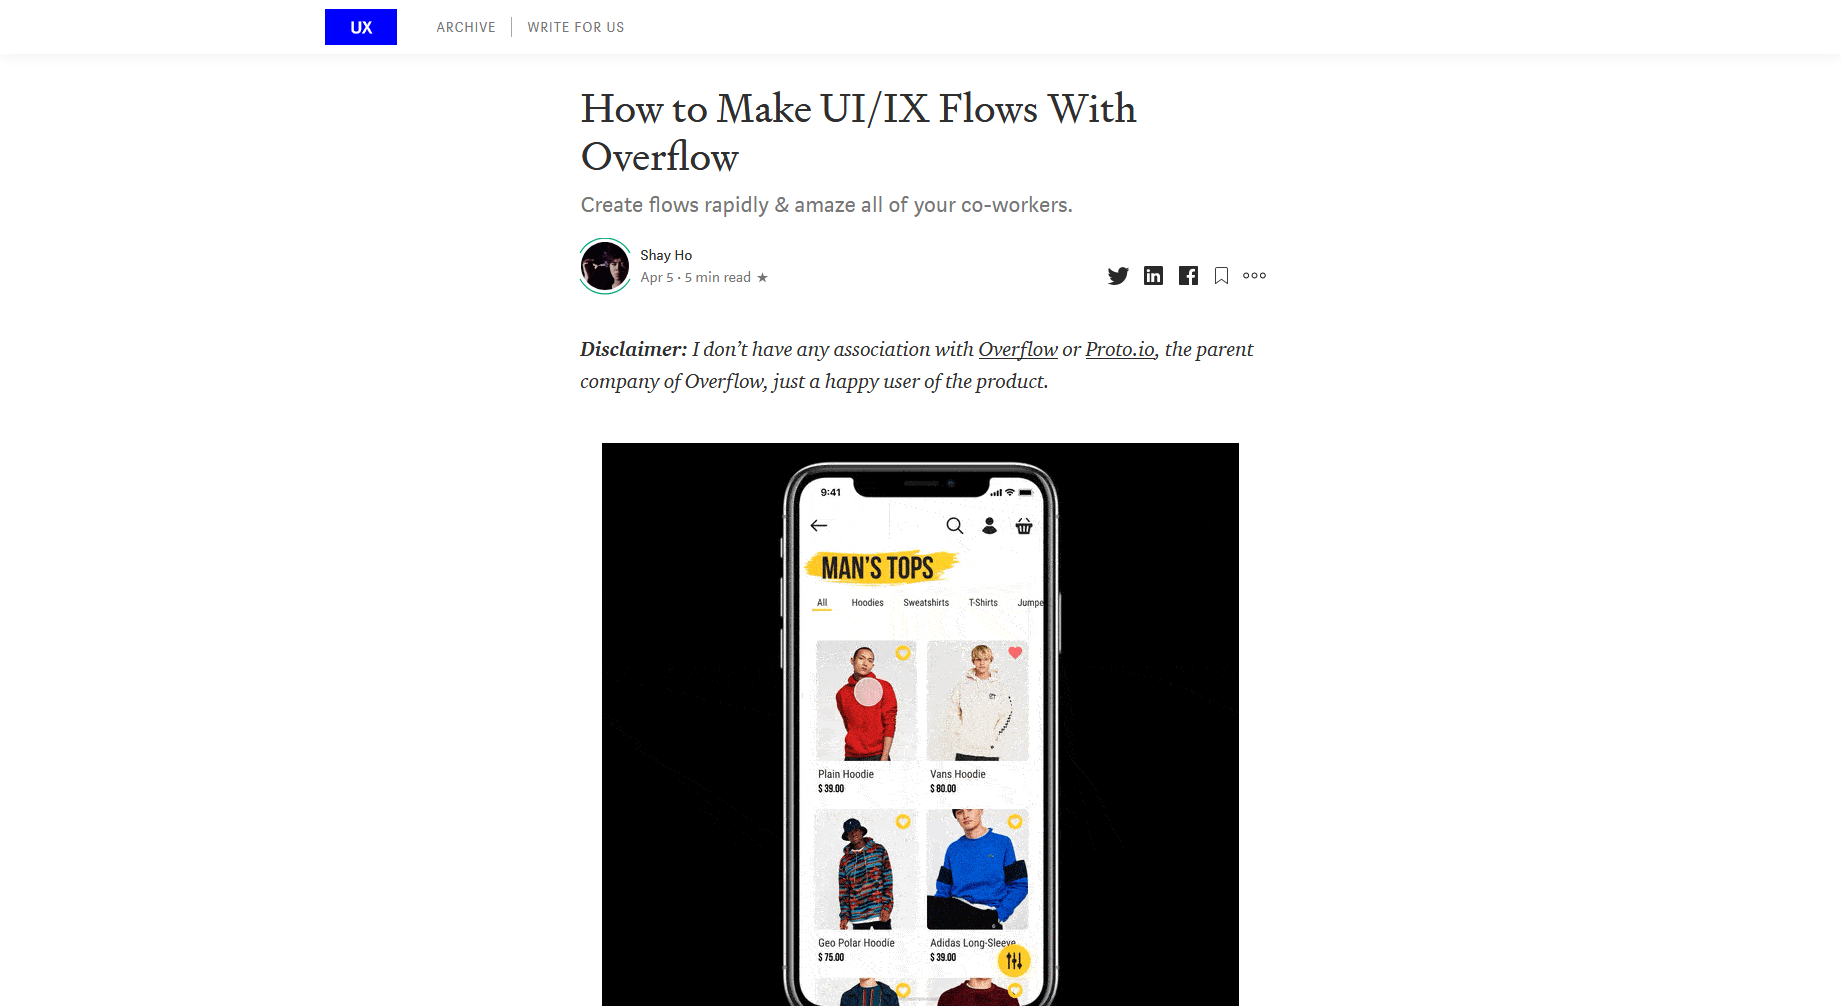 How to Make UI/IX Flows With Overflow — UX in Plain English